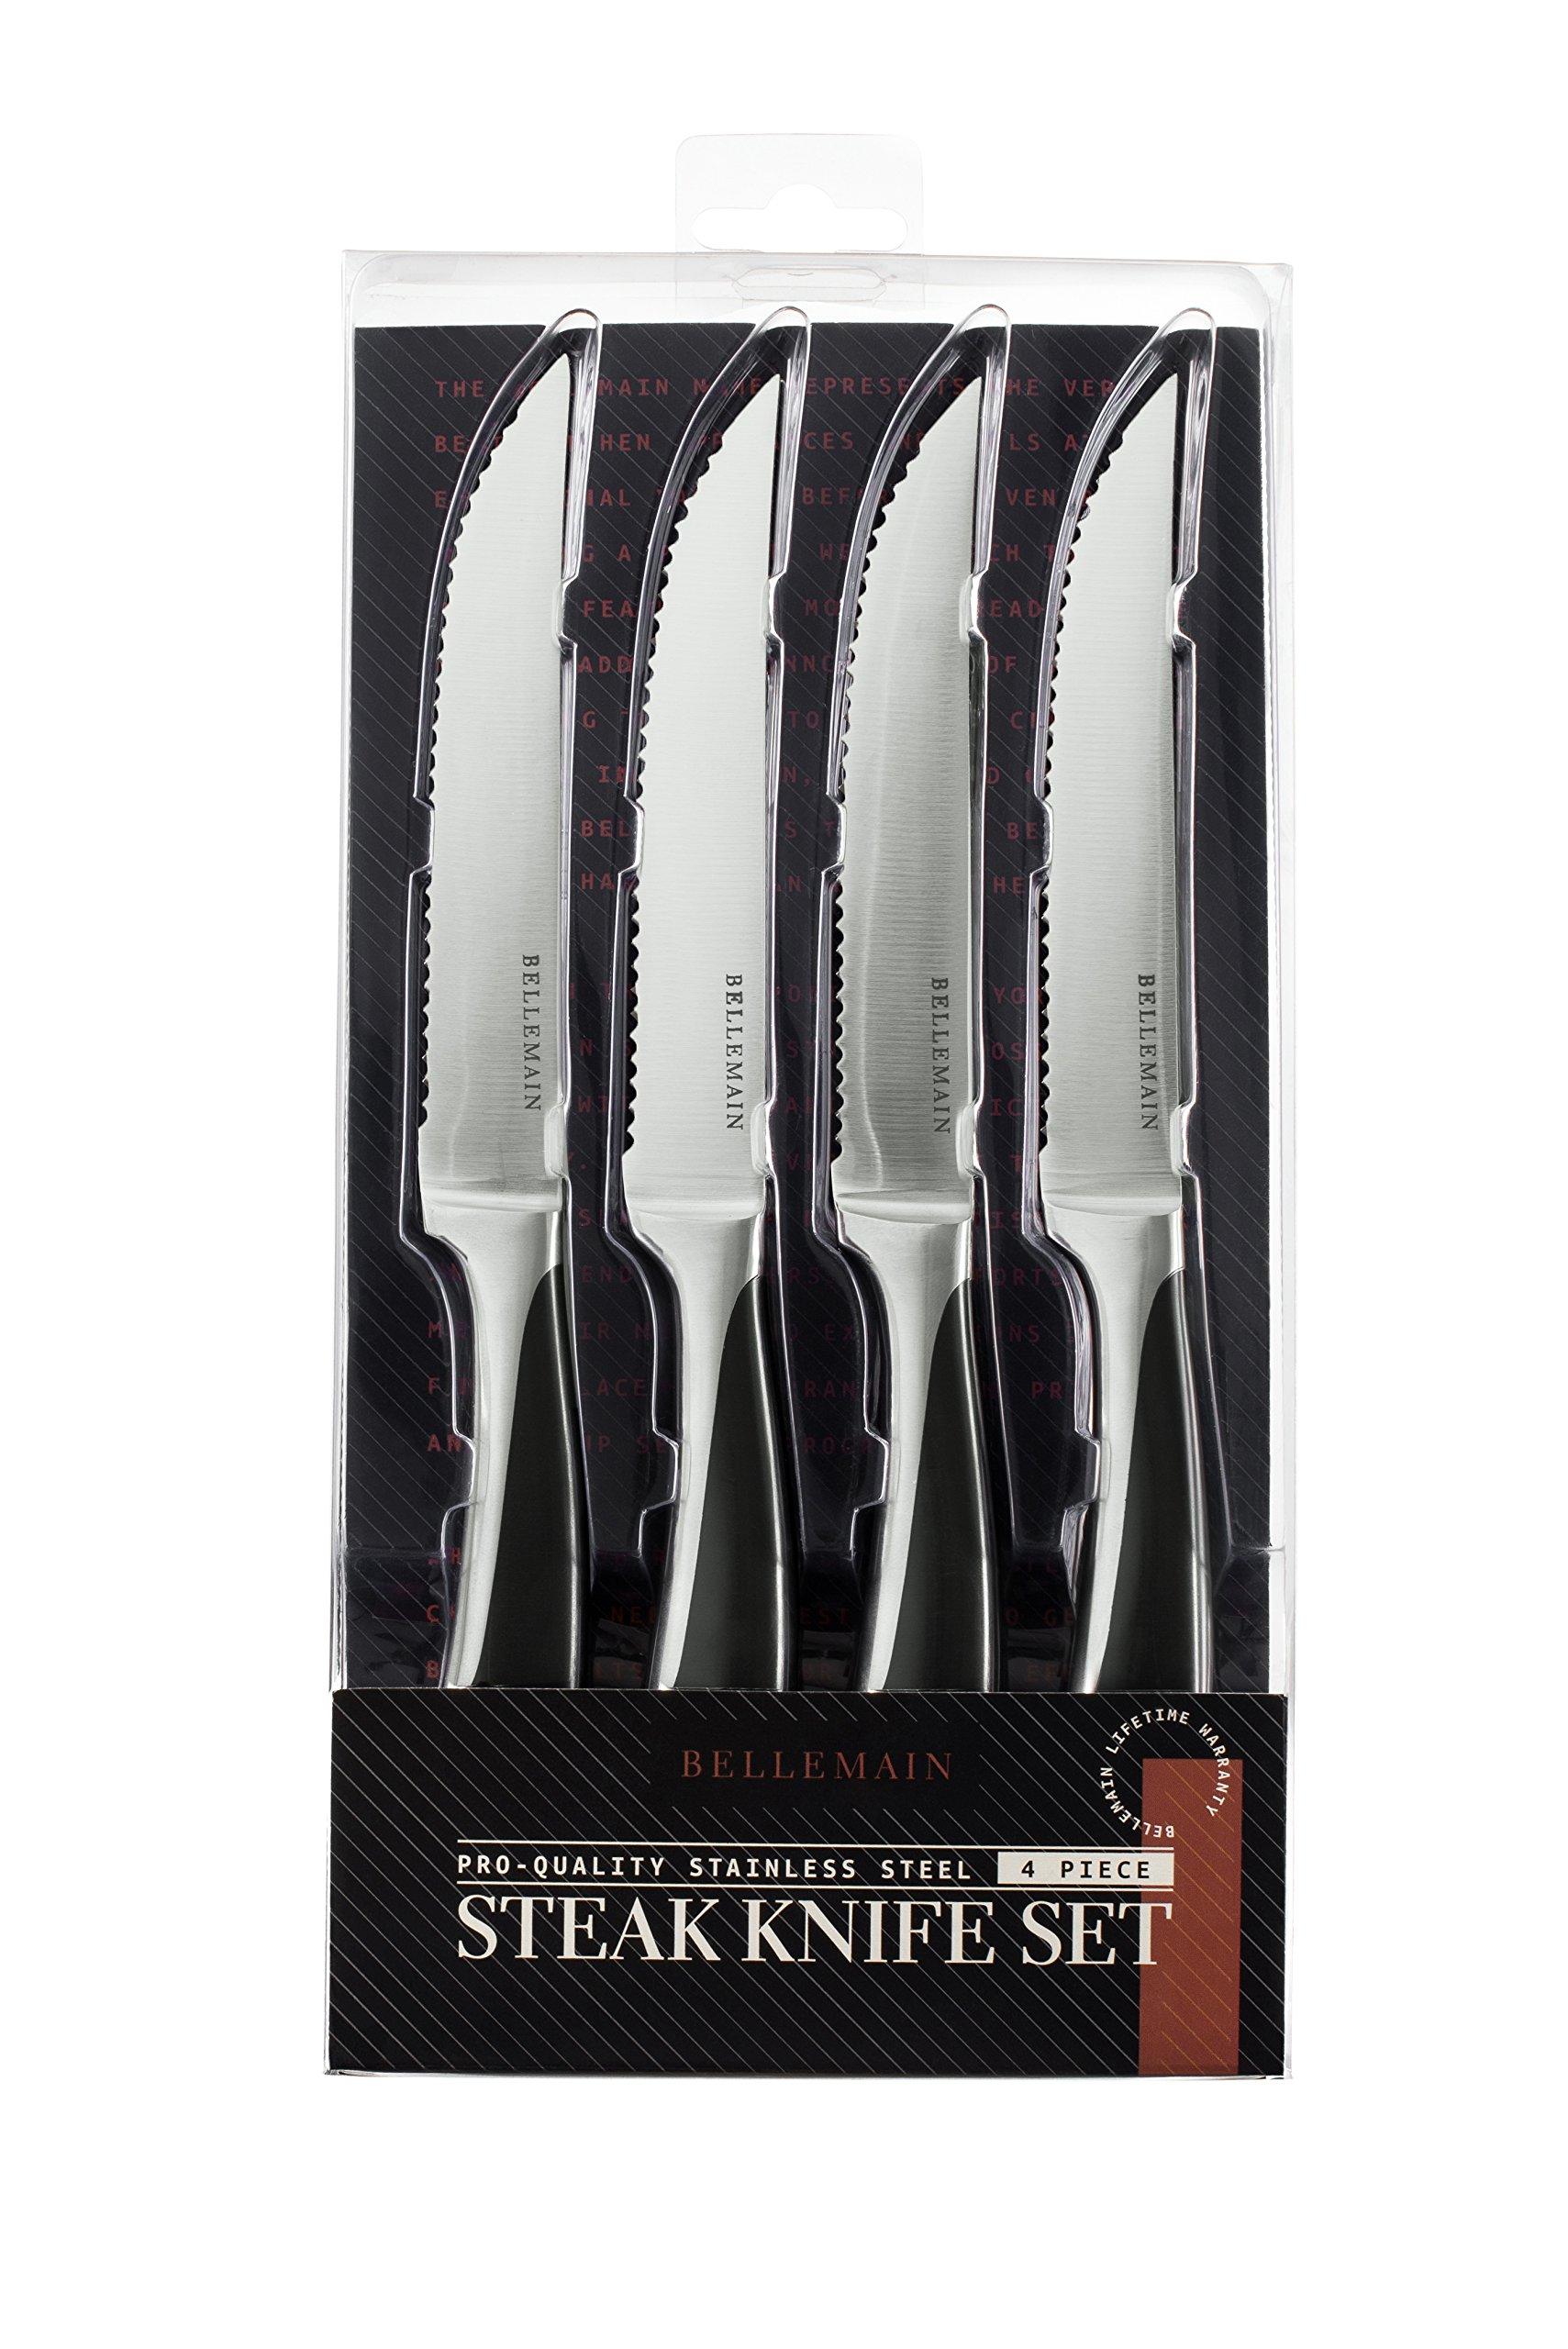 Bellemain Premium Steak Knife Set of 4 Stainless Steel by Bellemain (Image #6)